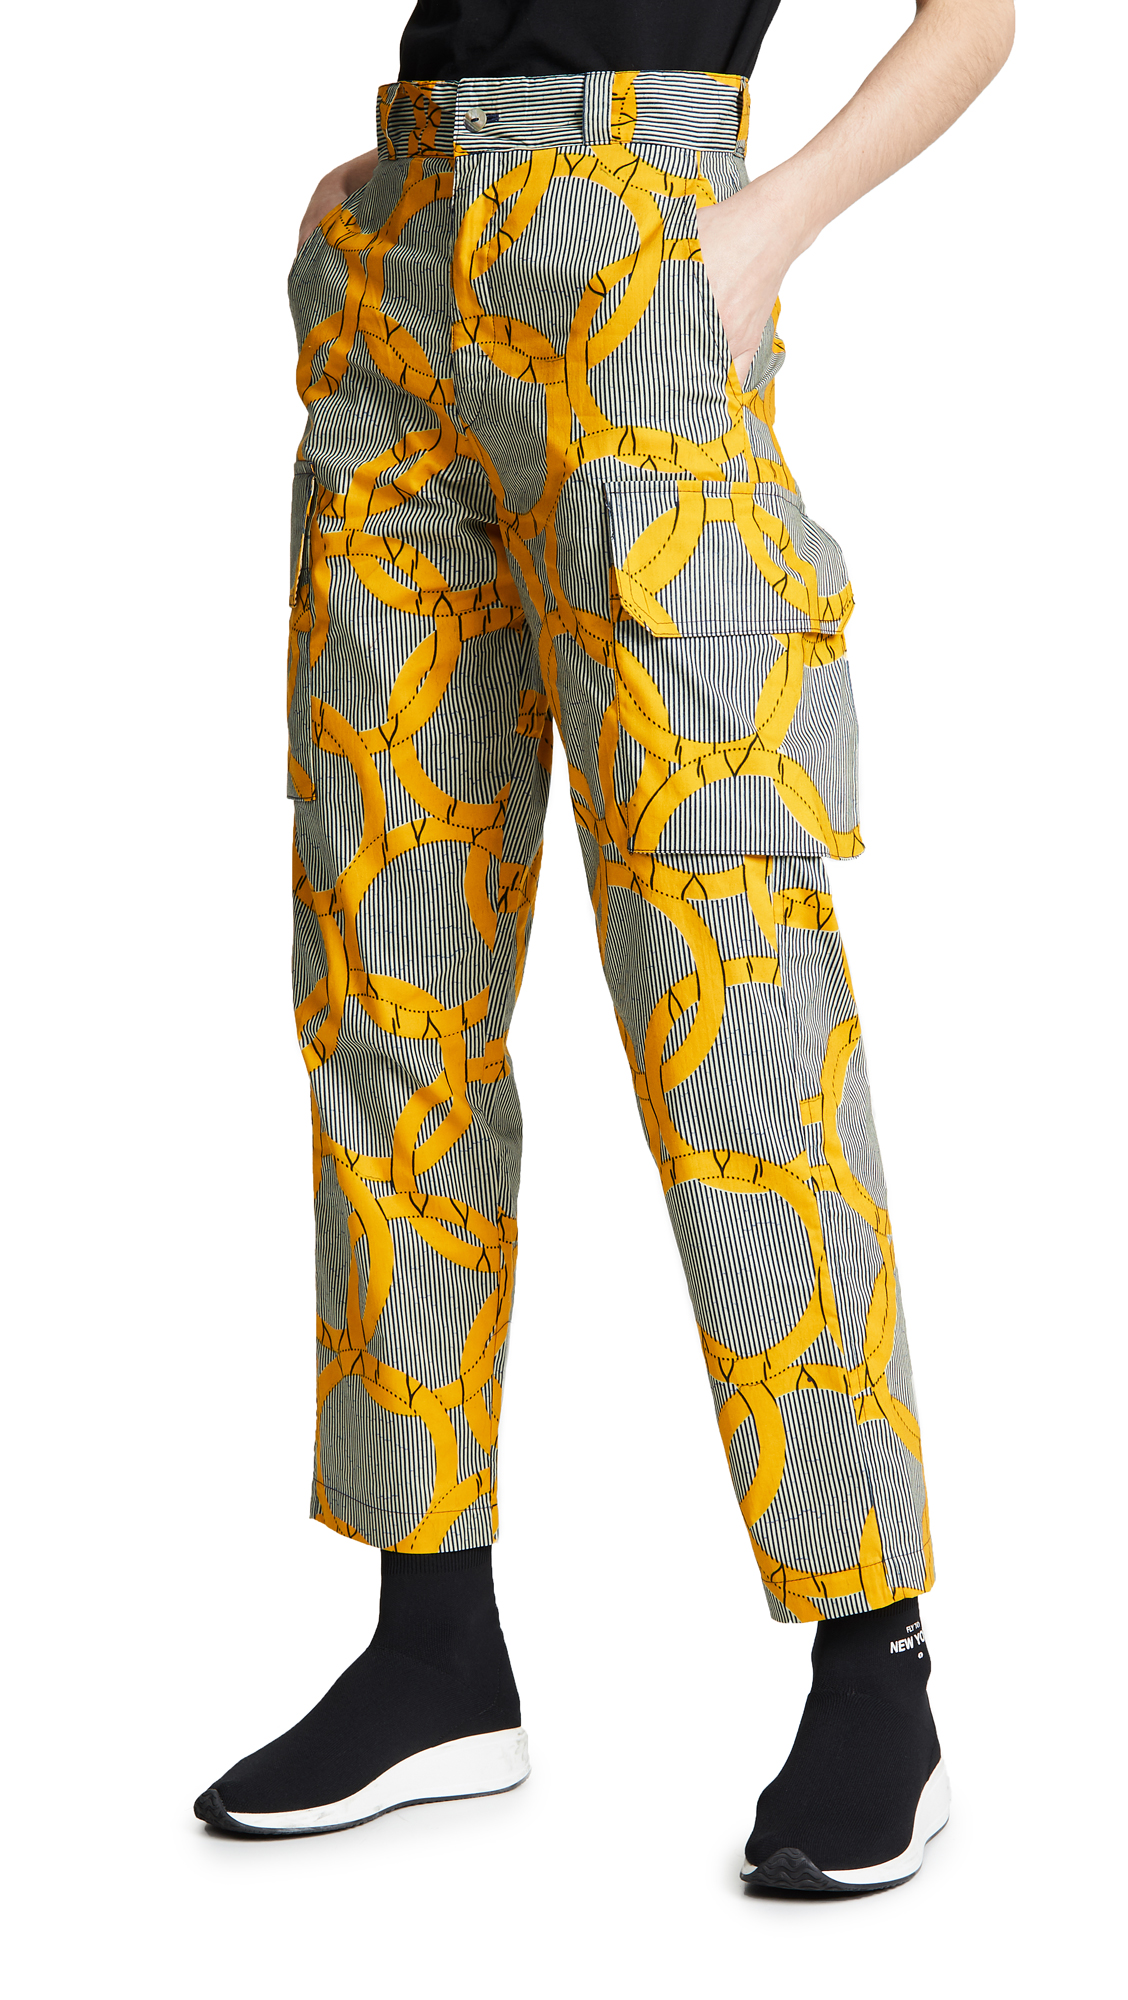 MAISON CHATEAU ROUGE Printed Cargo Pants in Olympique Jaune